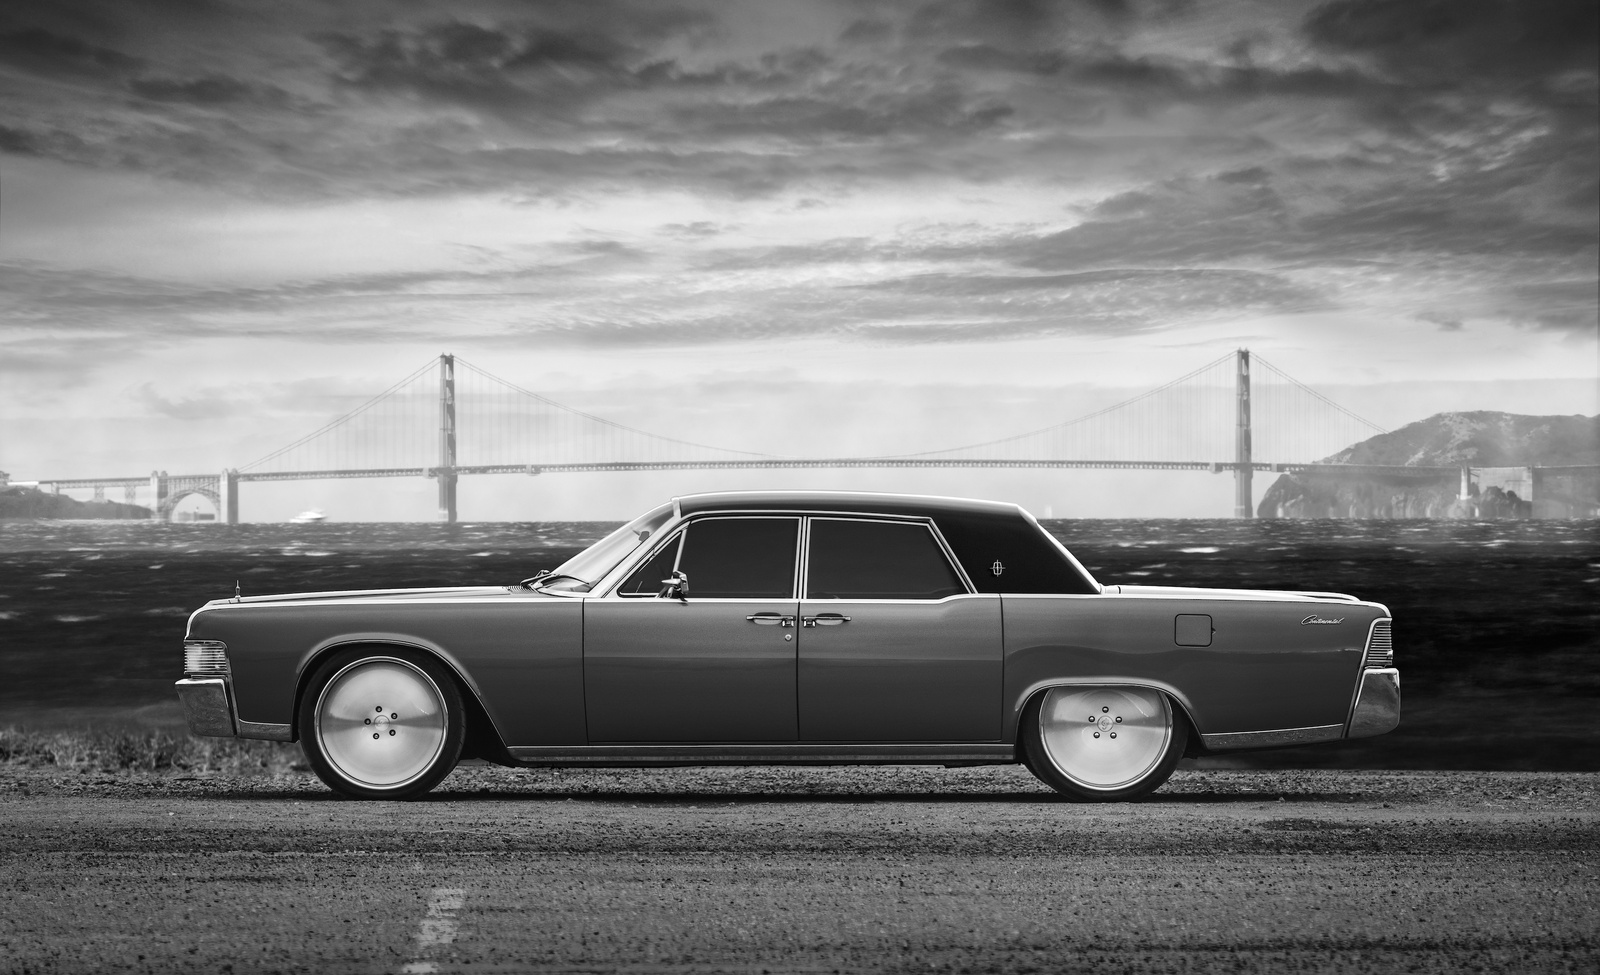 lincoln continental questions trying to list a fully restored 1965 lincoln continental but the. Black Bedroom Furniture Sets. Home Design Ideas